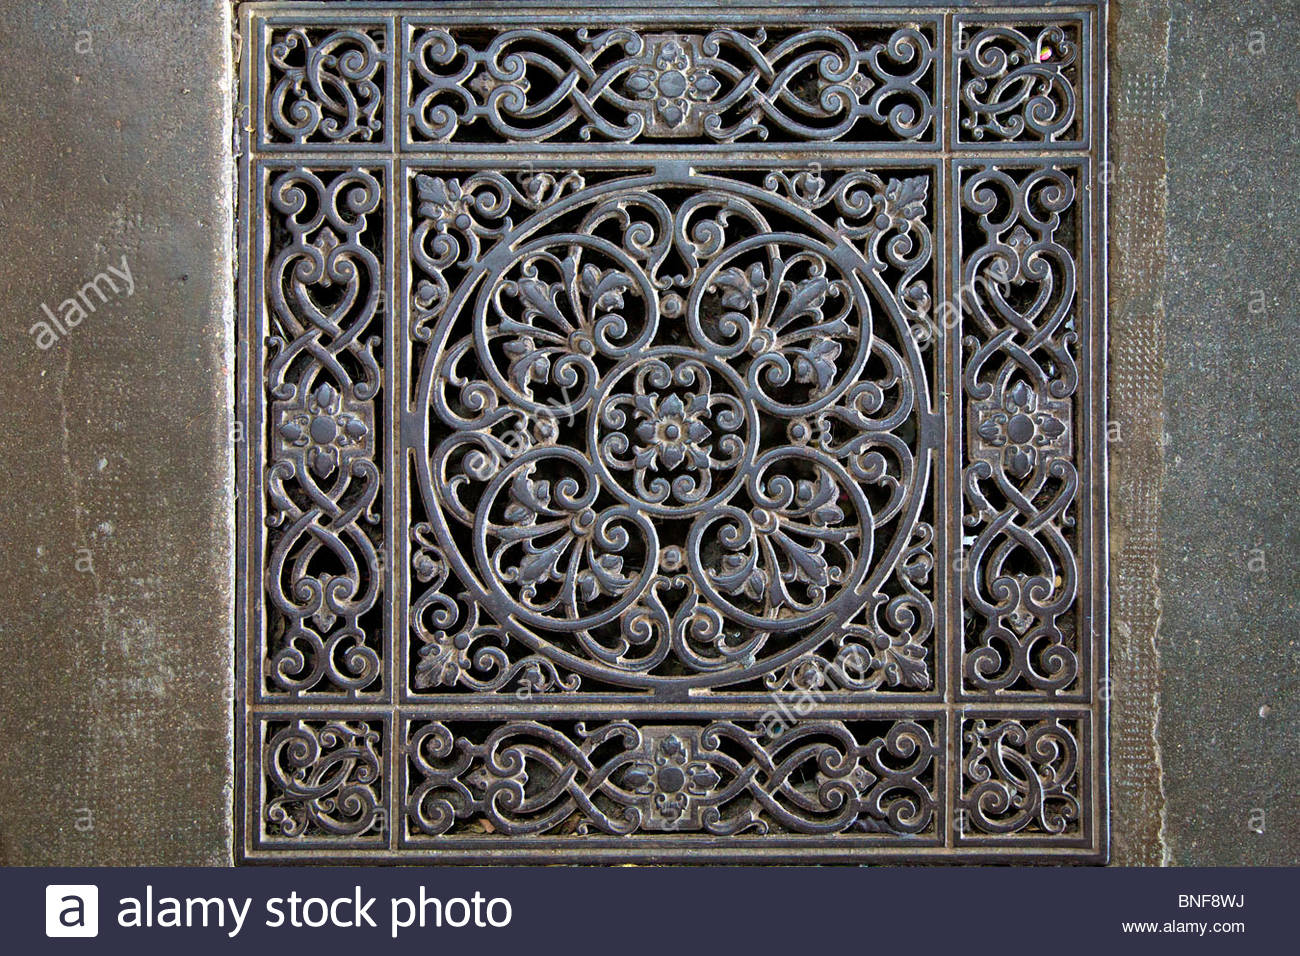 Decorative Metal Floor Grate On The Floor Of A Church In